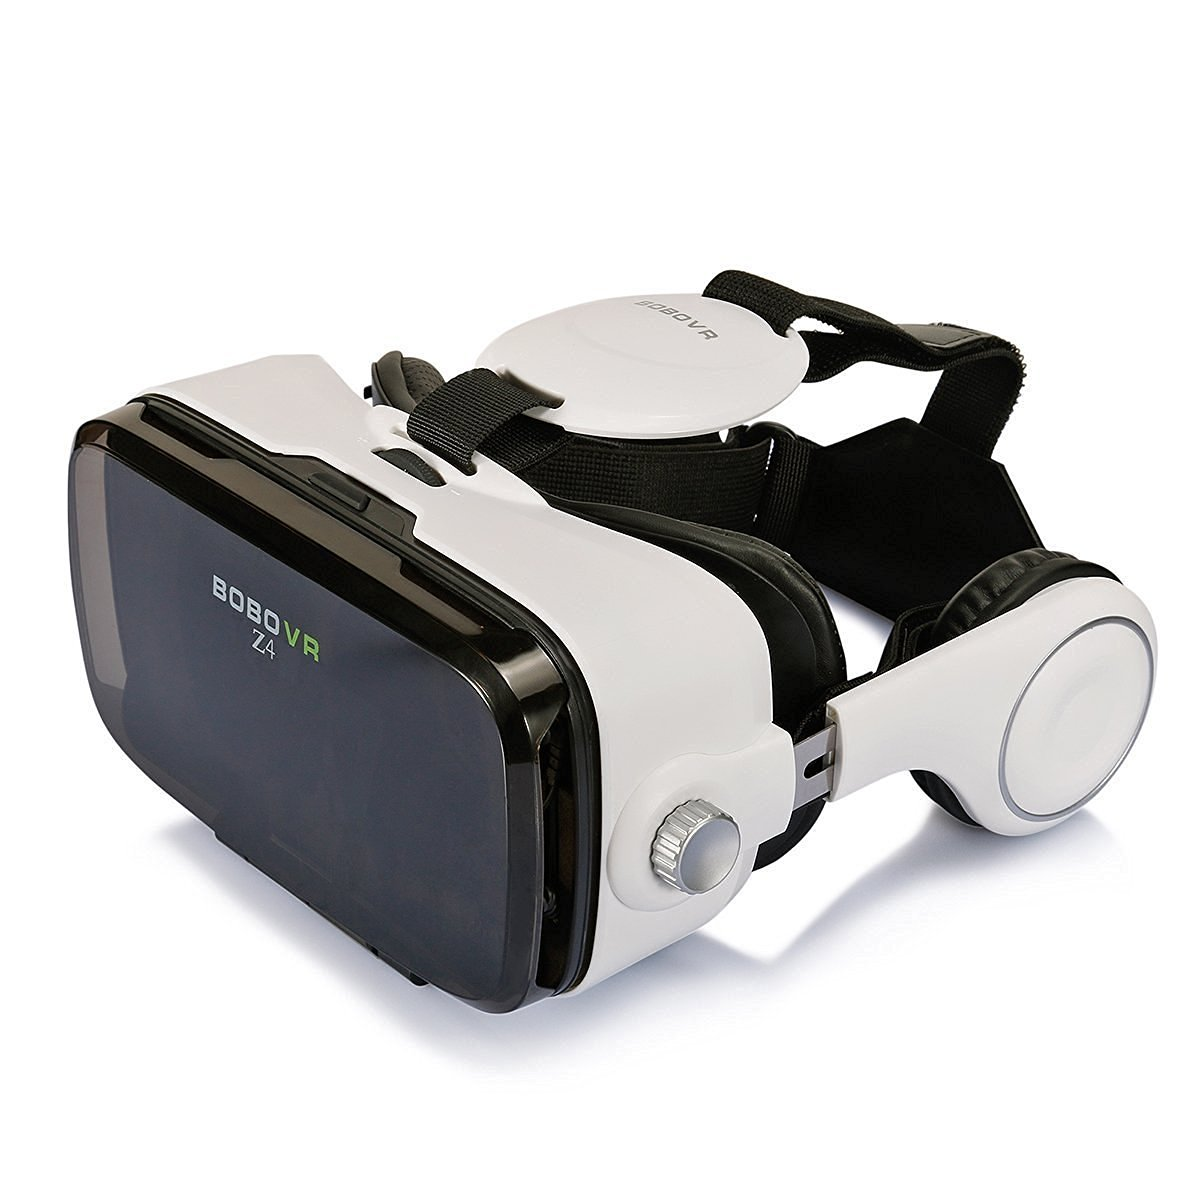 51978ddcc8a1 Get Quotations · 3D VR Glass BOBO Z4 Virtual Reality 3D Glasses Headset 120  Degrees FOV VR Box With